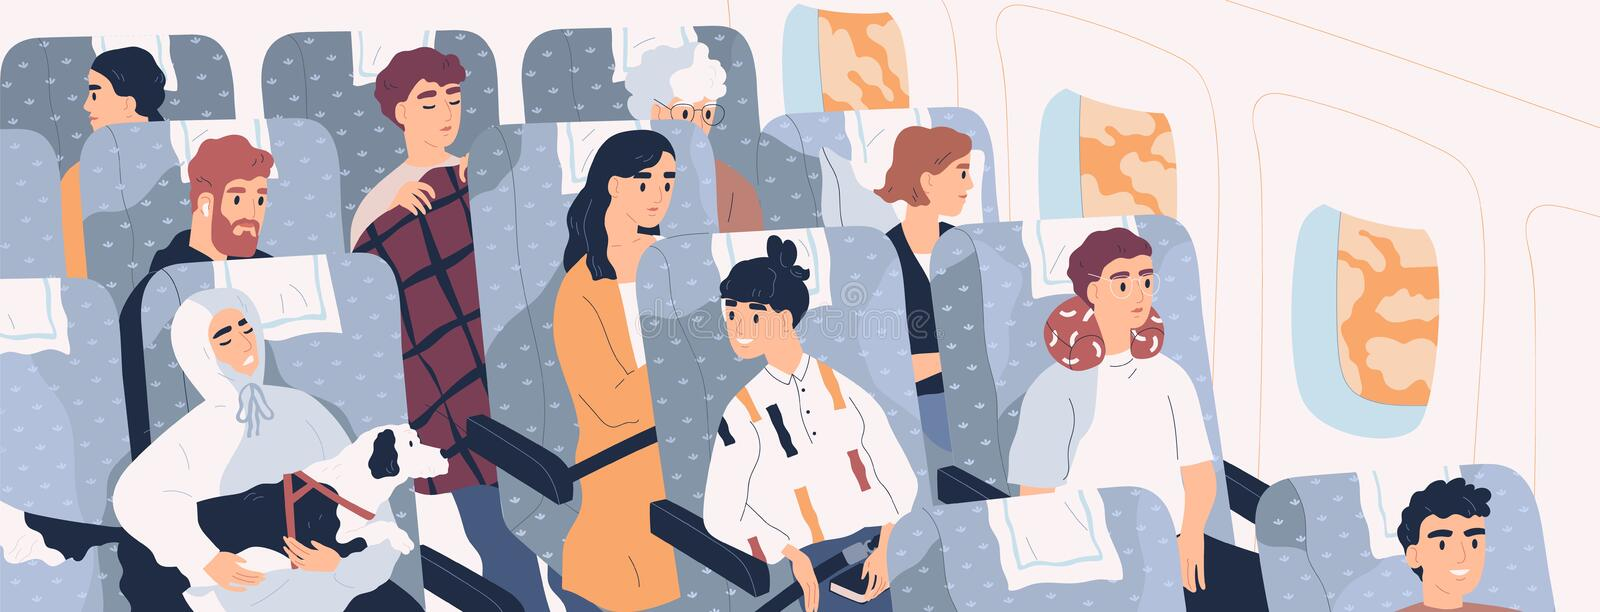 Passengers inside airliner. Funny people sitting on seats in modern aircraft cabin. Cute men and women aboard plane vector illustration